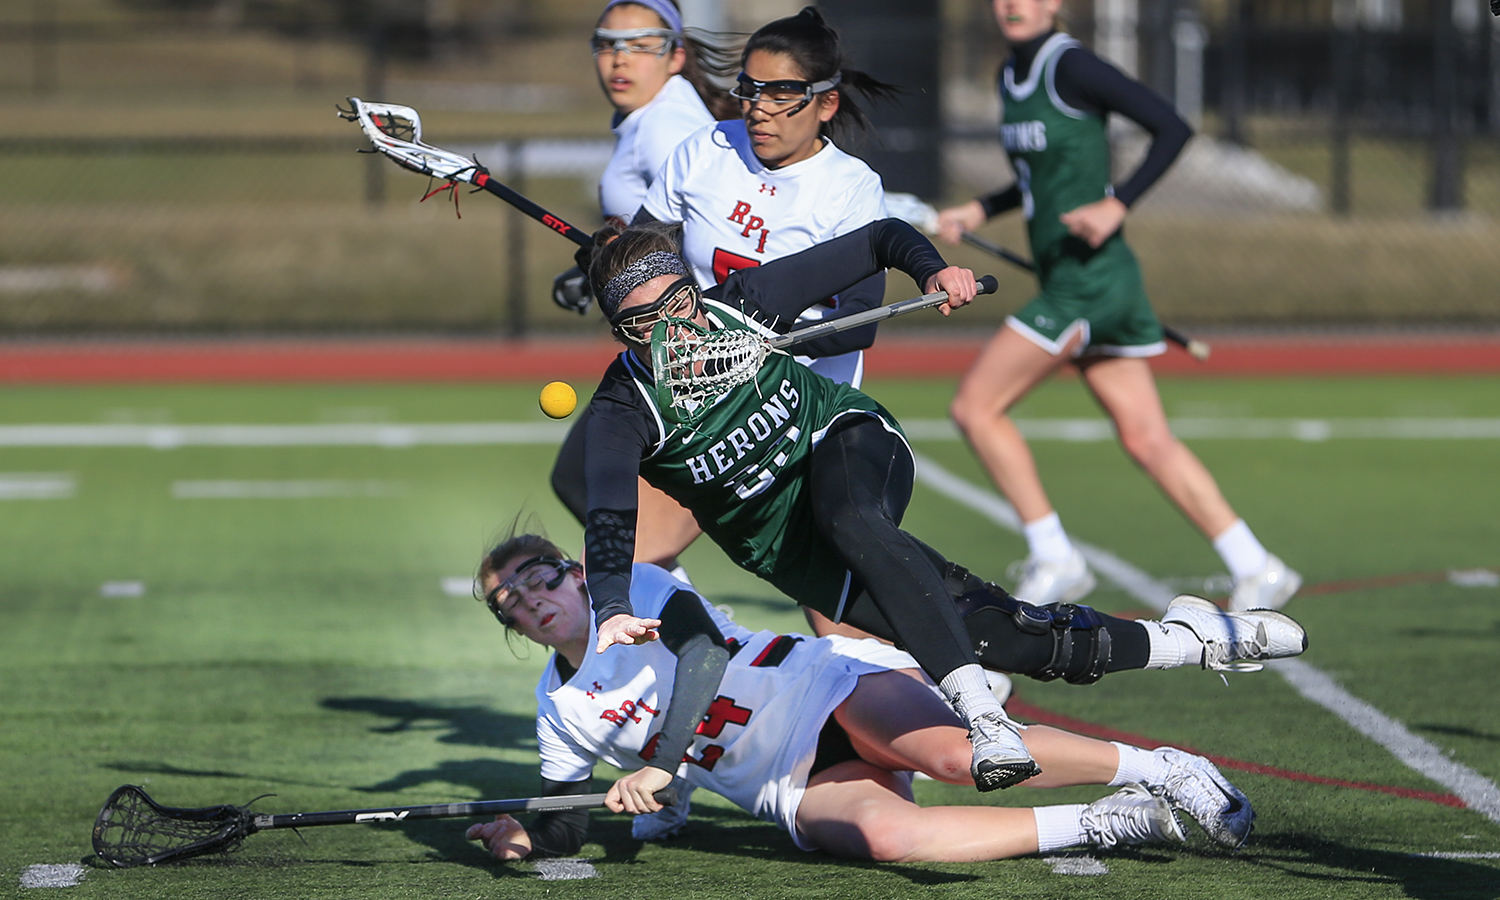 Sadie Mapstone '21 levels a defender during William Smith's 7-2 win over Rensselaer Polytechnic Institute.